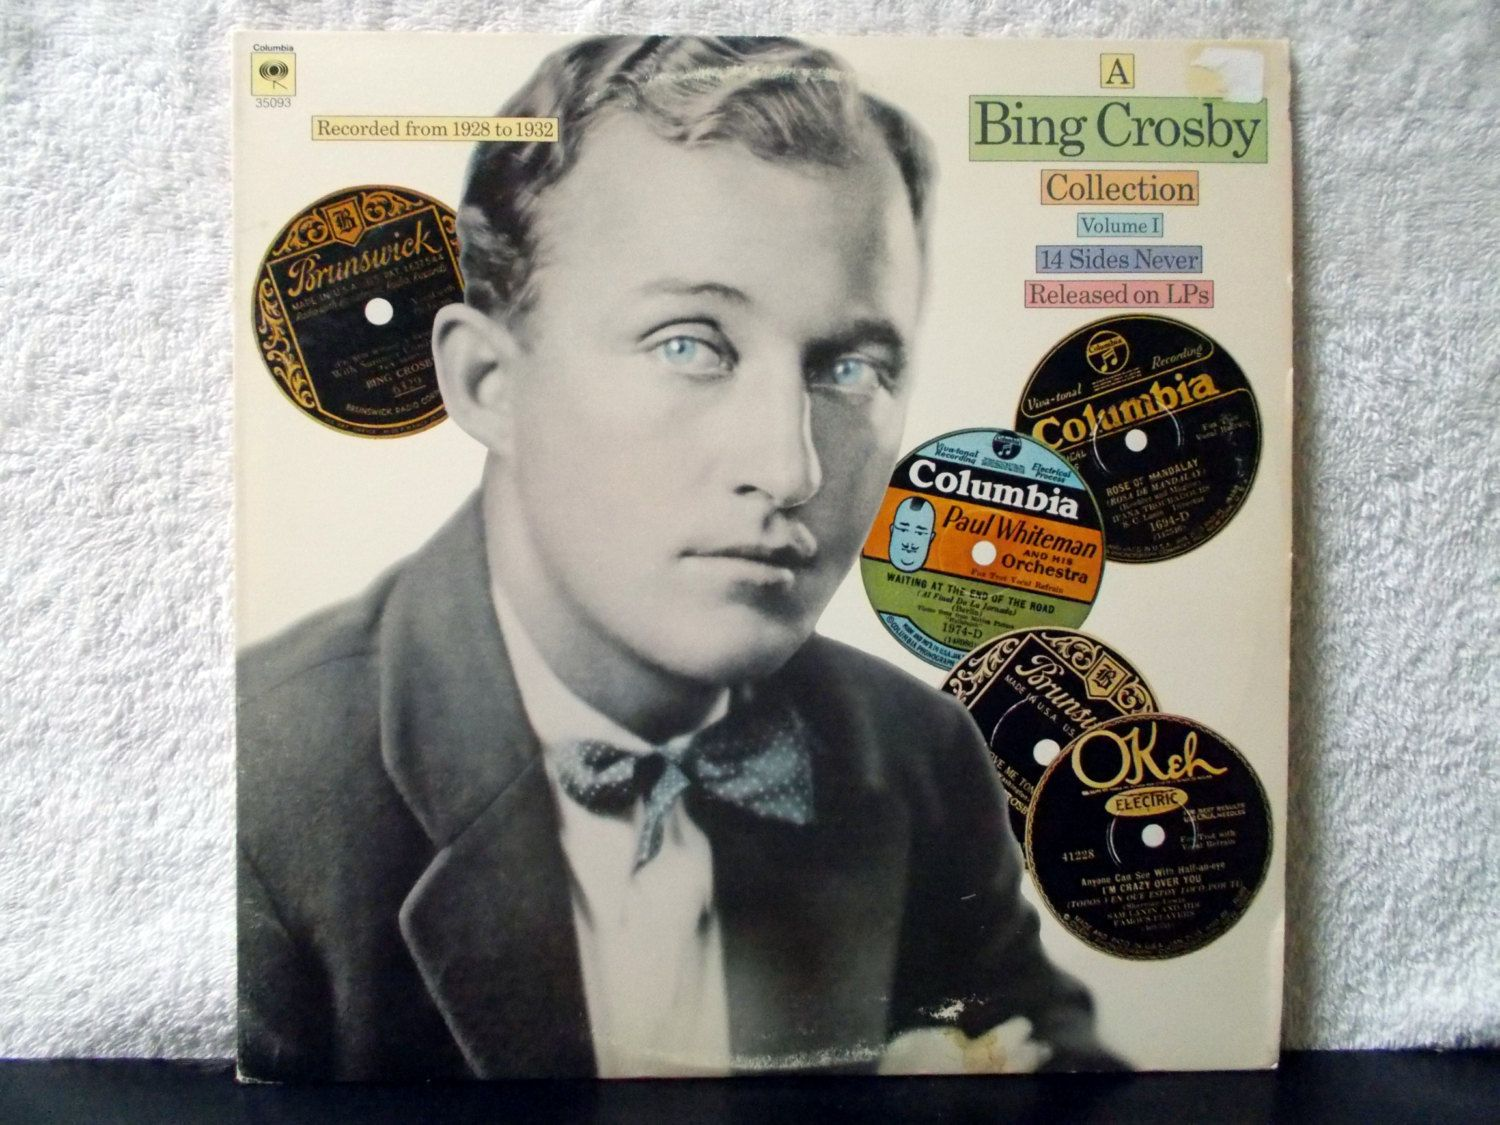 A Bing Crosby Collection Volume 1- Recorded From 1928 to